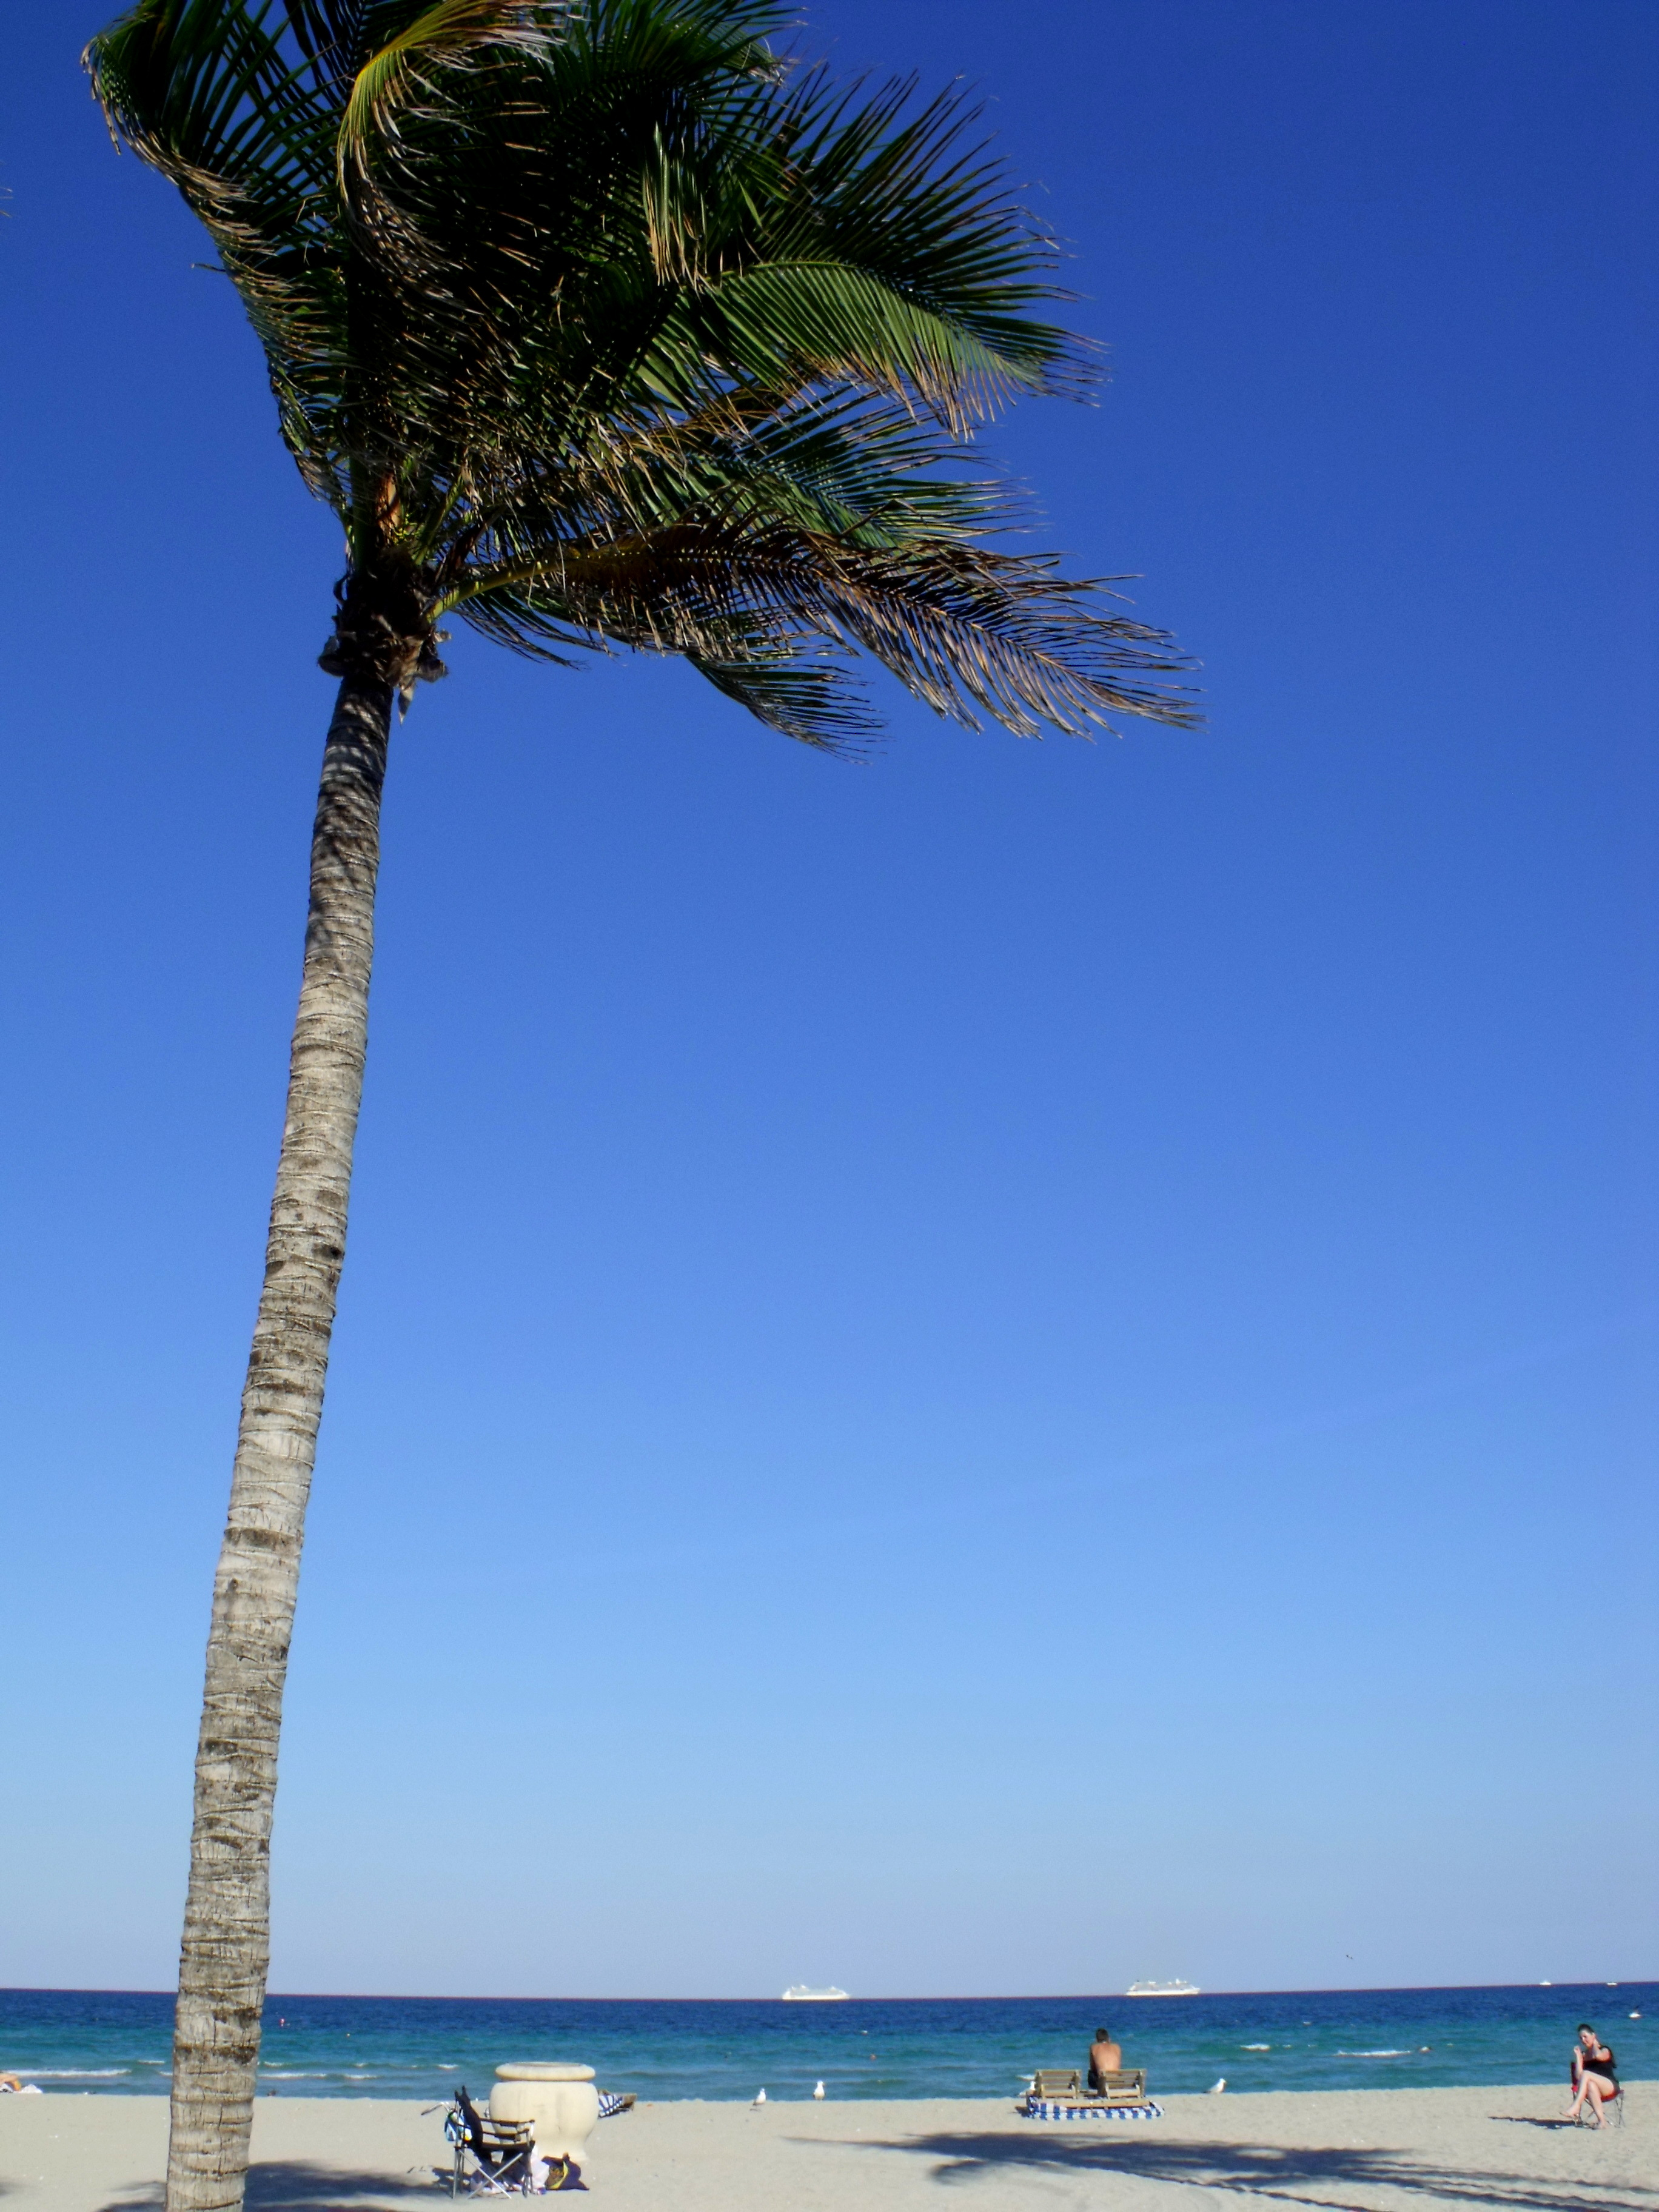 Blue Sky and Pretty Palms